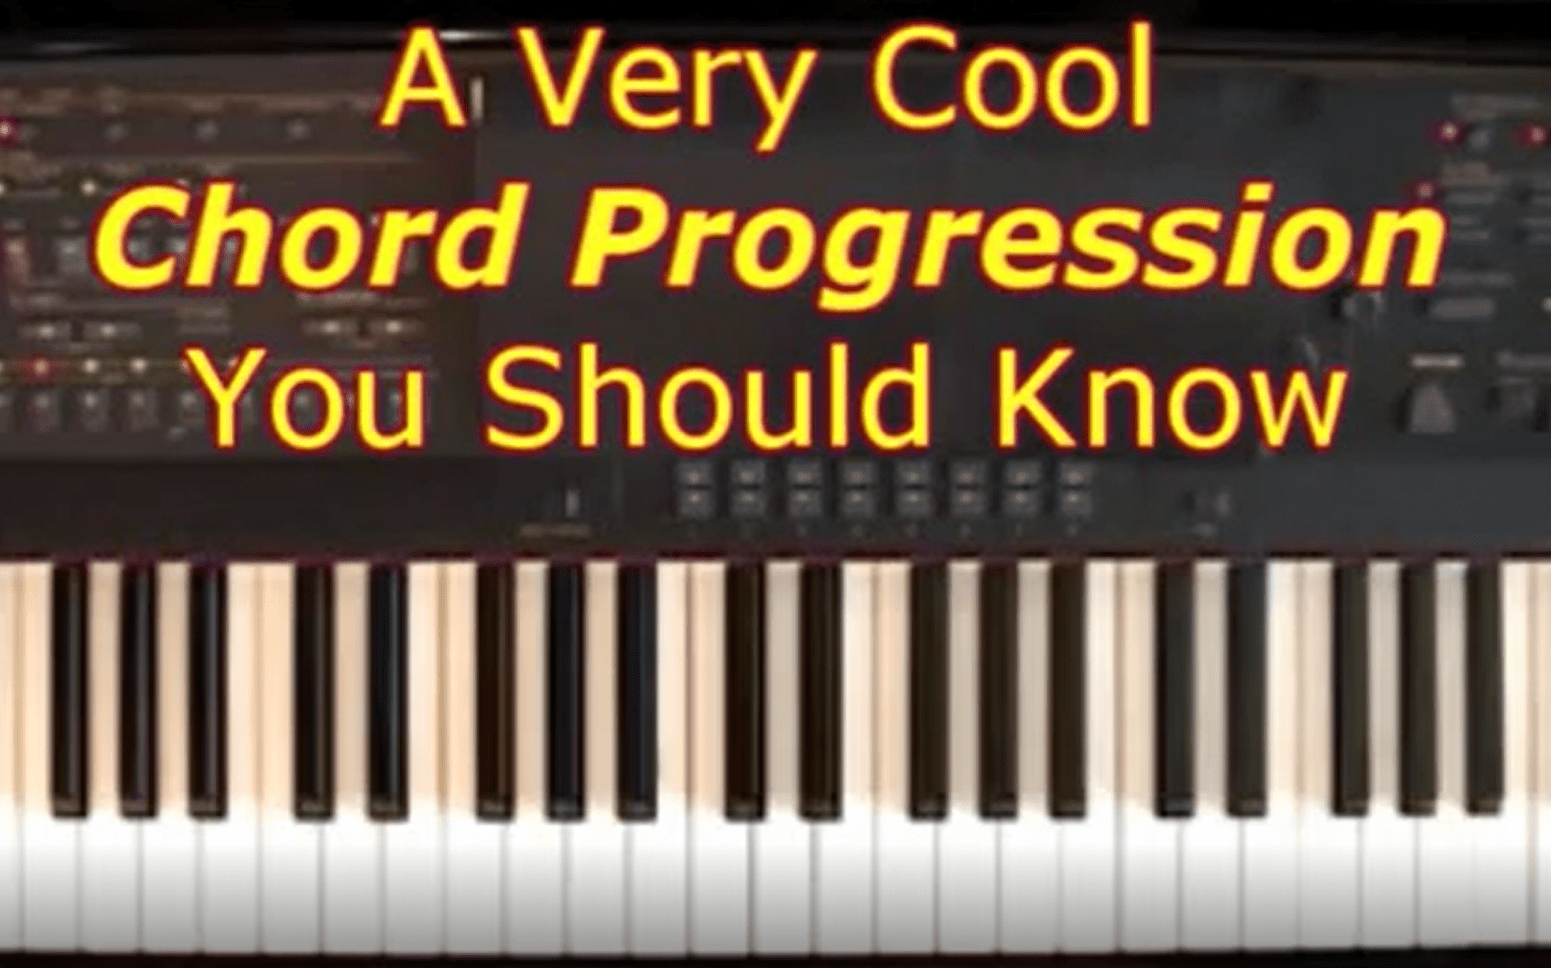 A Very Cool Chord Progression You Can Play... : Piano Lessons for Adults